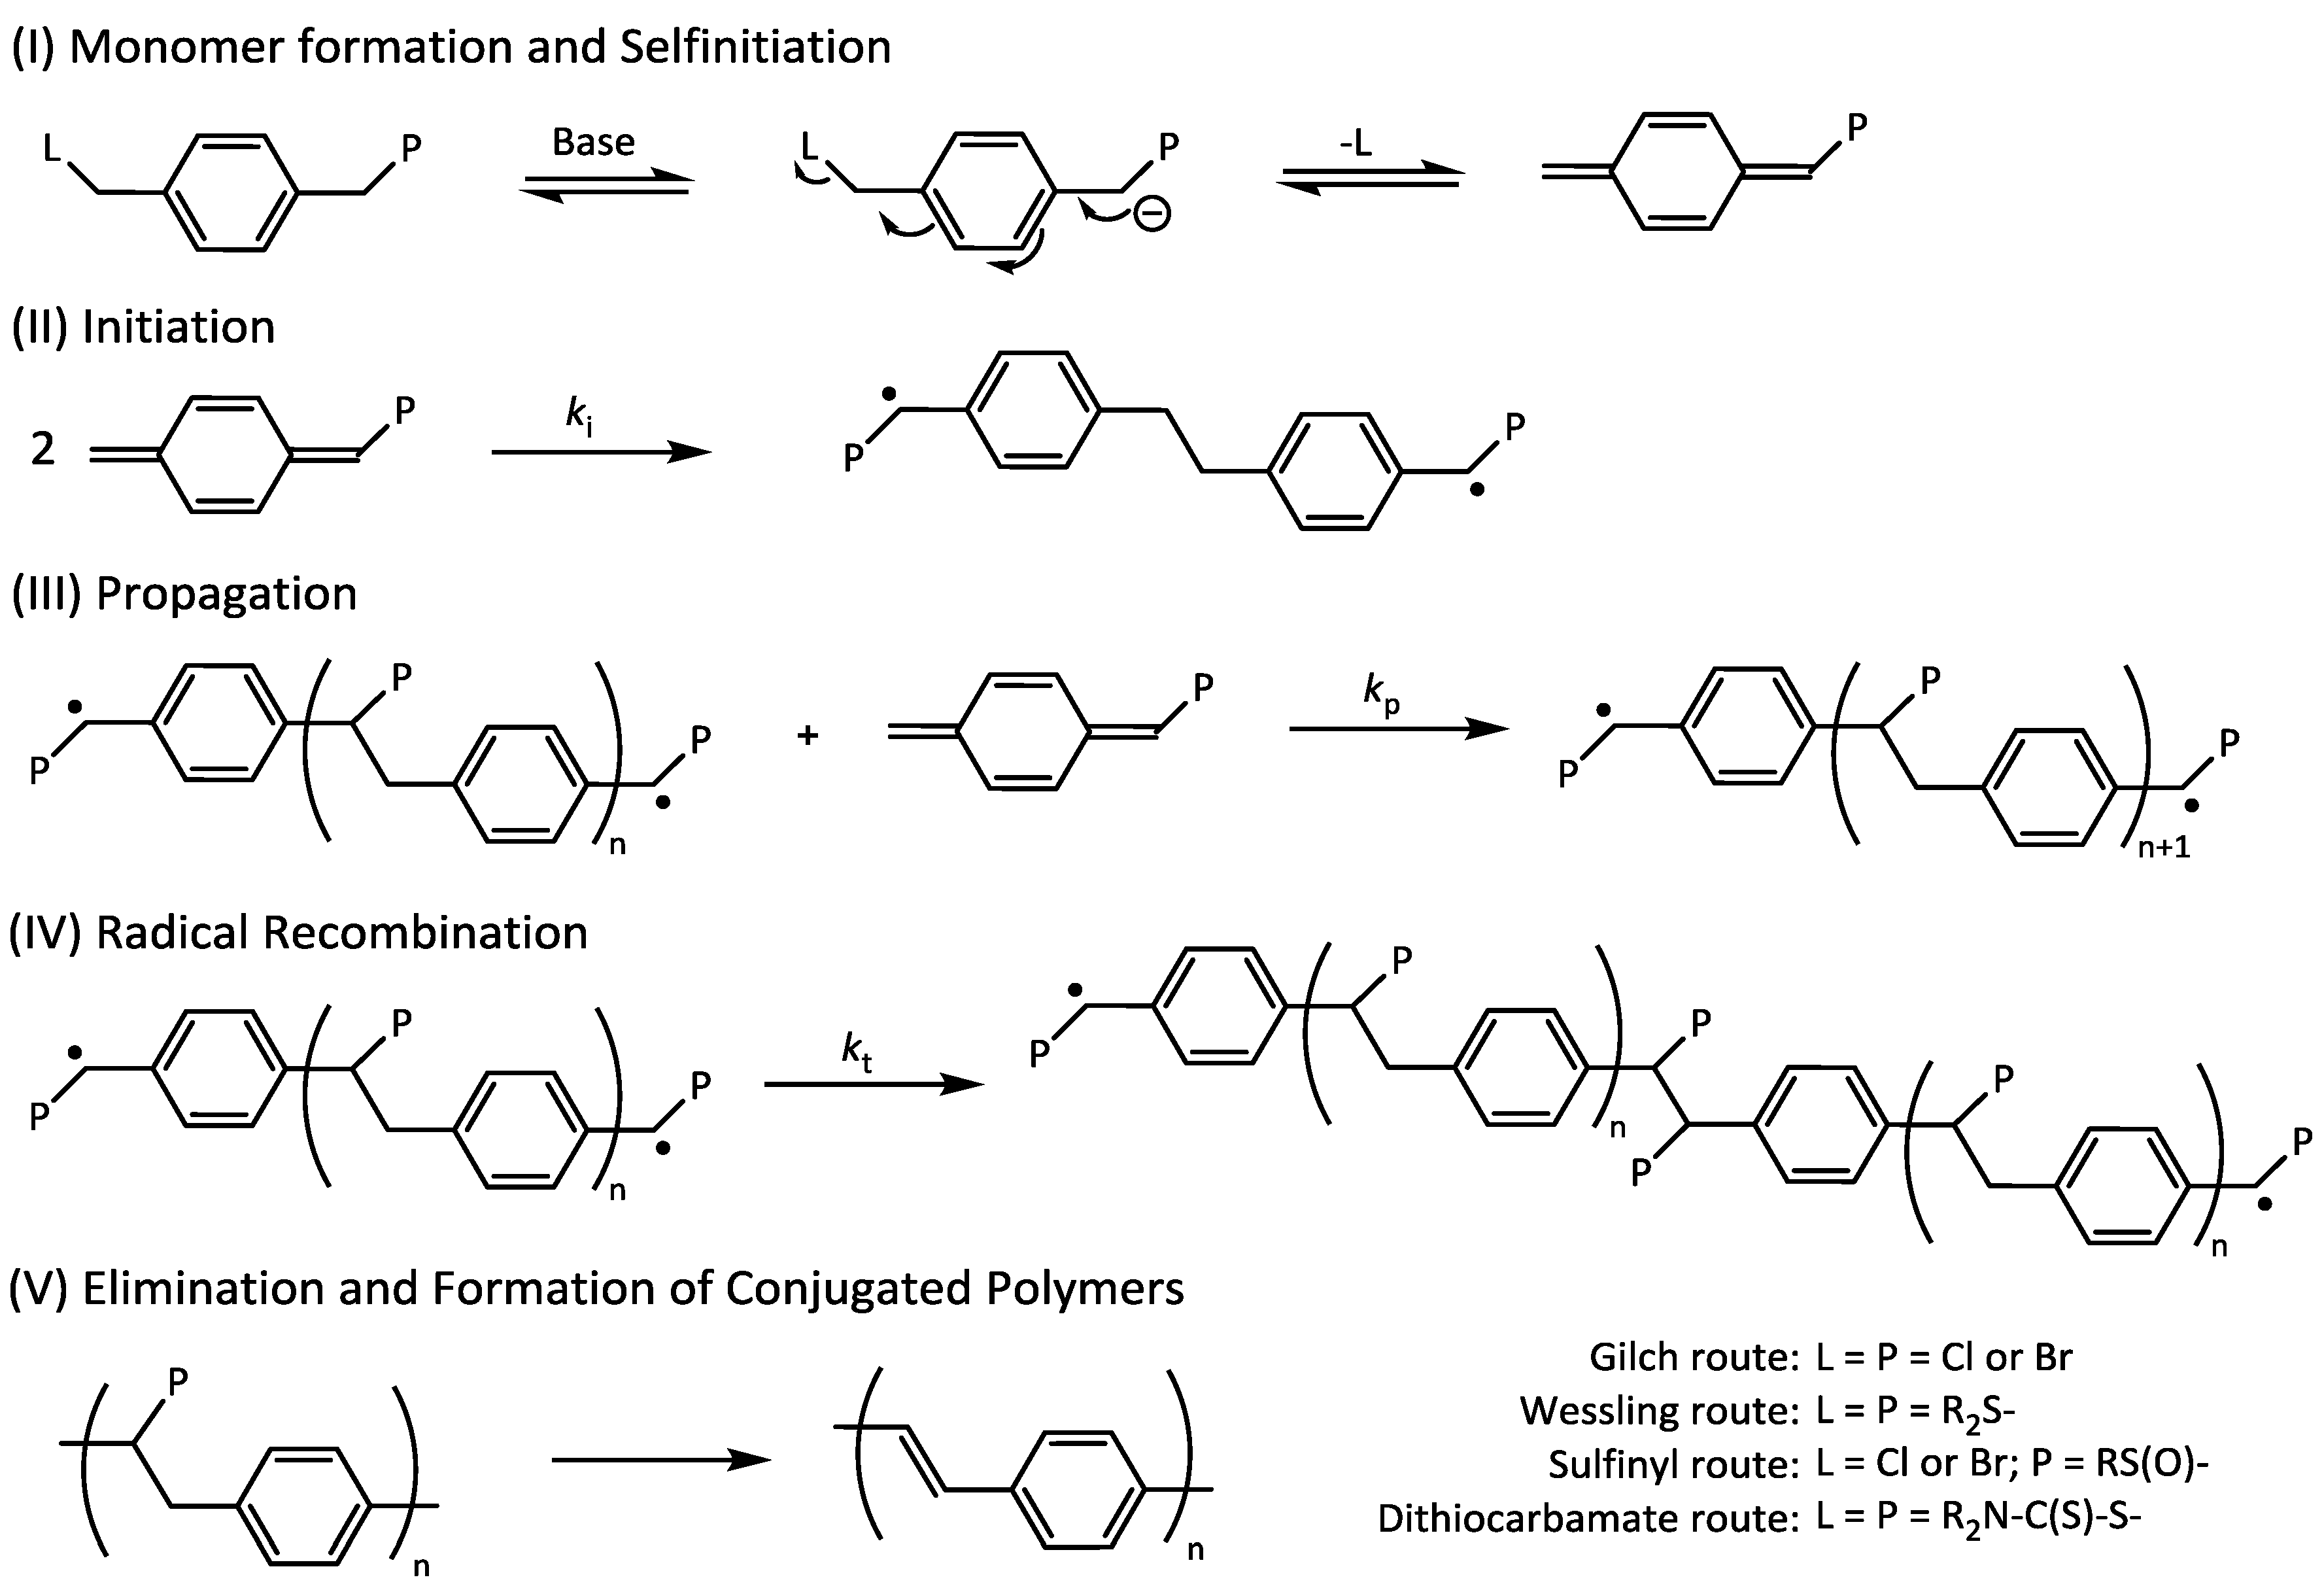 syntehsis of cyclopentadienone Synthesis of 5- and 6- 67 cyclopentadienone conversions to terephthalates and cycloadditions of alkynes and azides, sarah bragg, june 2011 68.